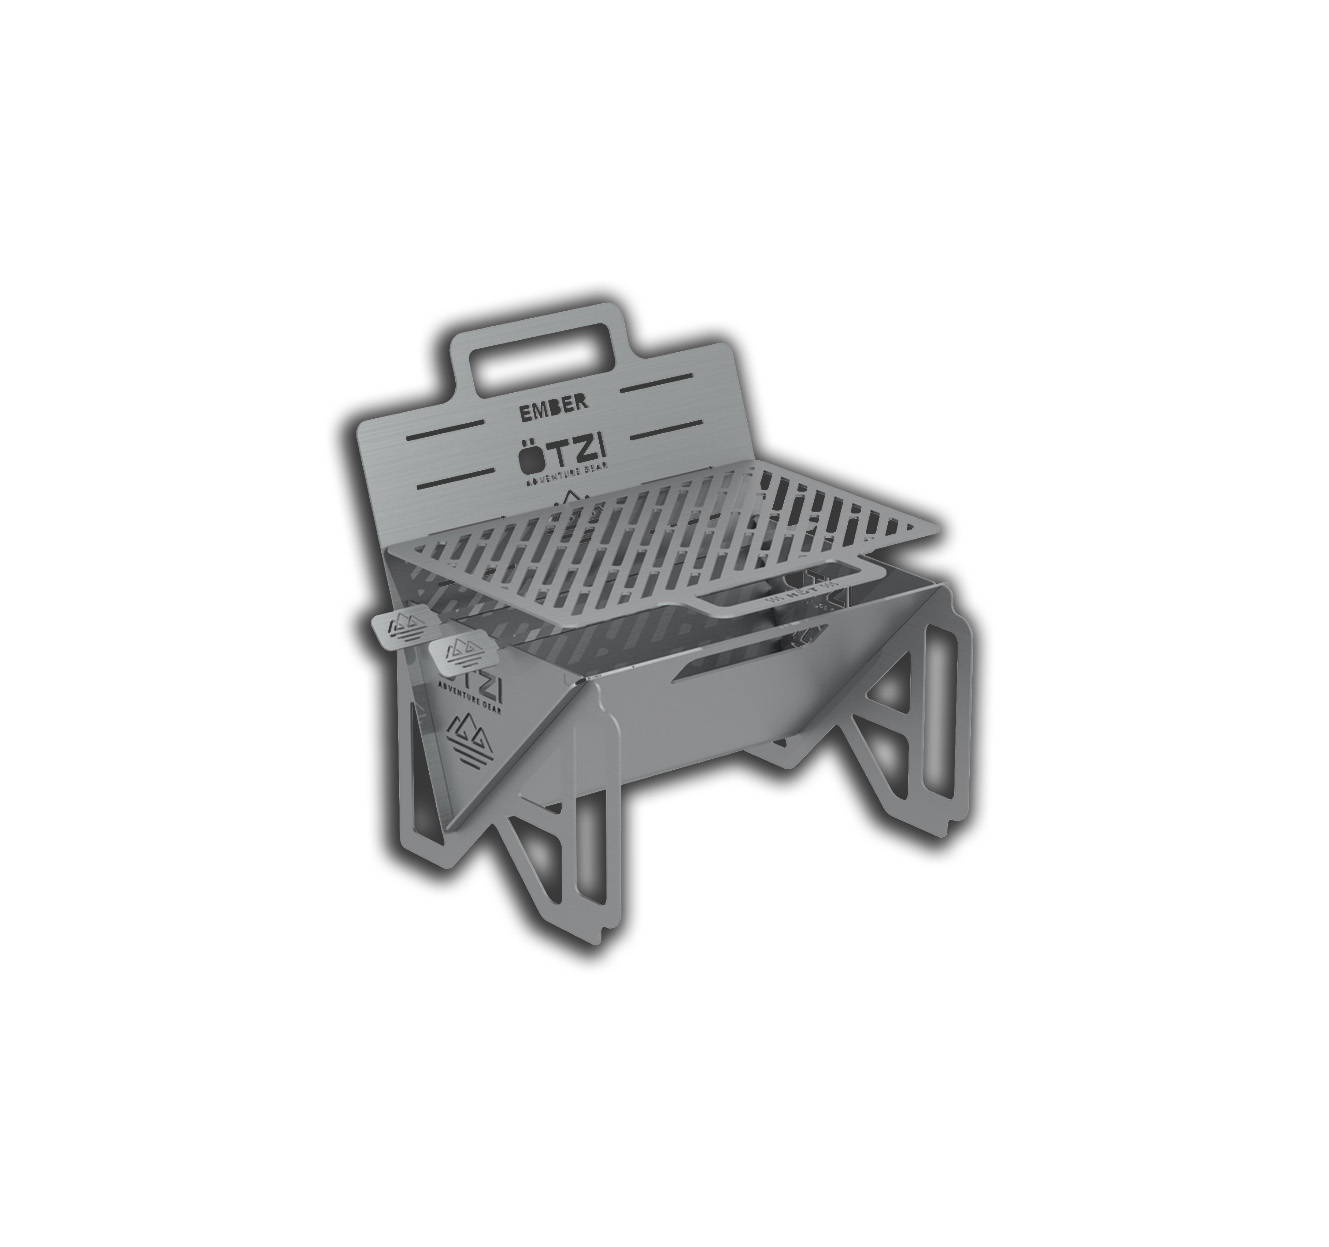 Camping stove, Camping grill, Camping cooking